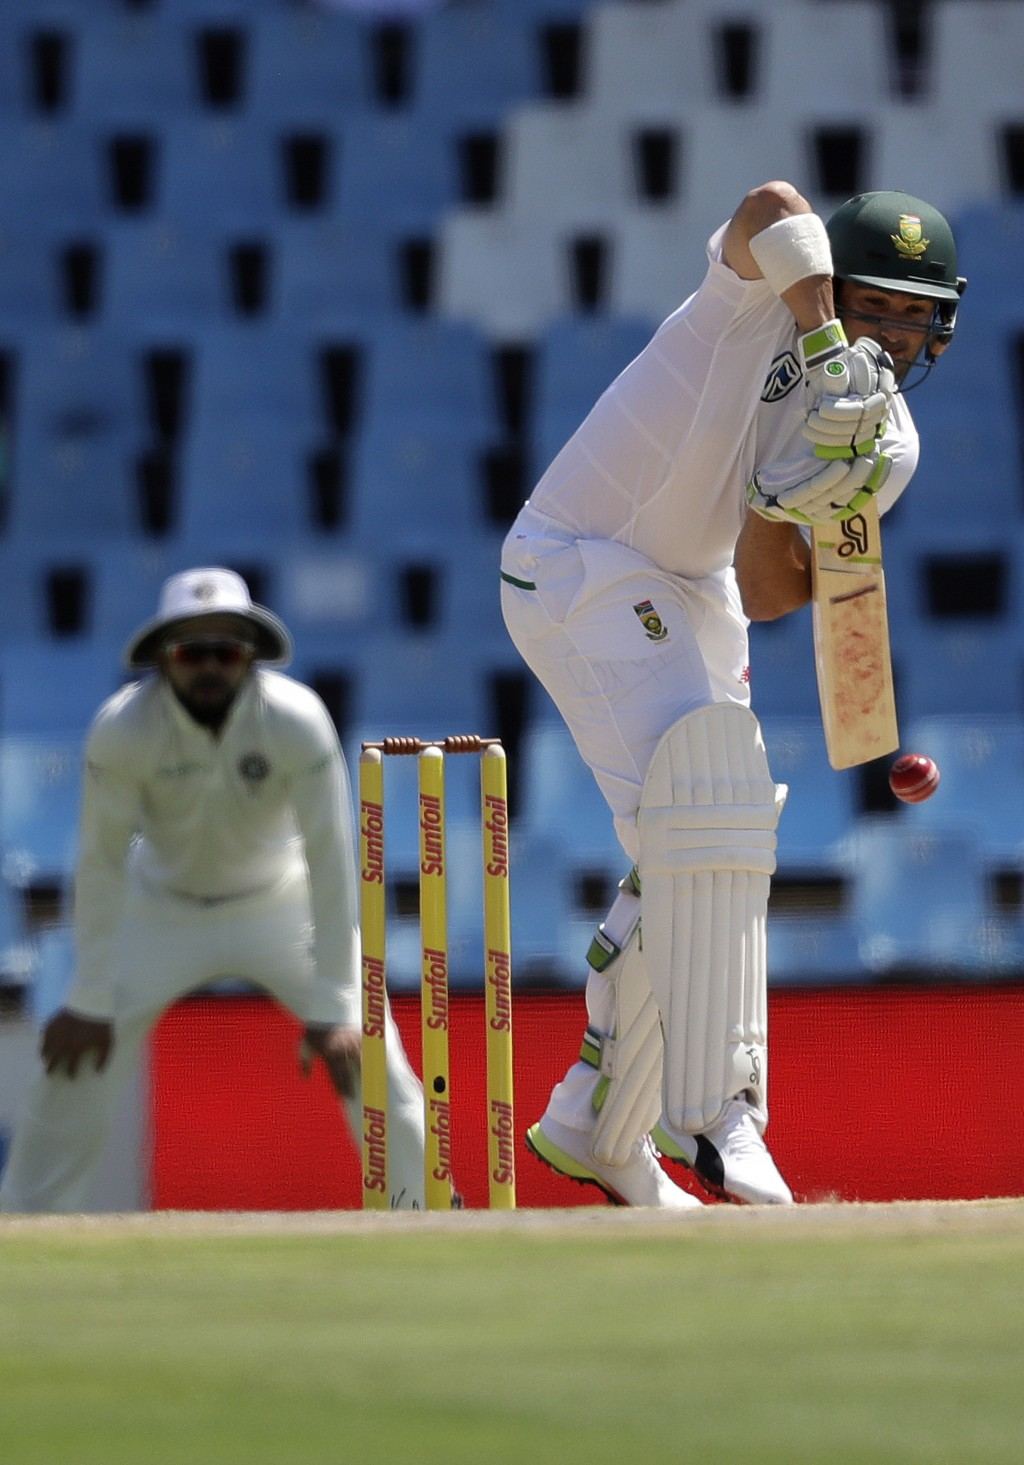 South Africa's Dean Elgar, plays a shot during the first day of the second cricket test match between South Africa and India at Centurion Park in Pret